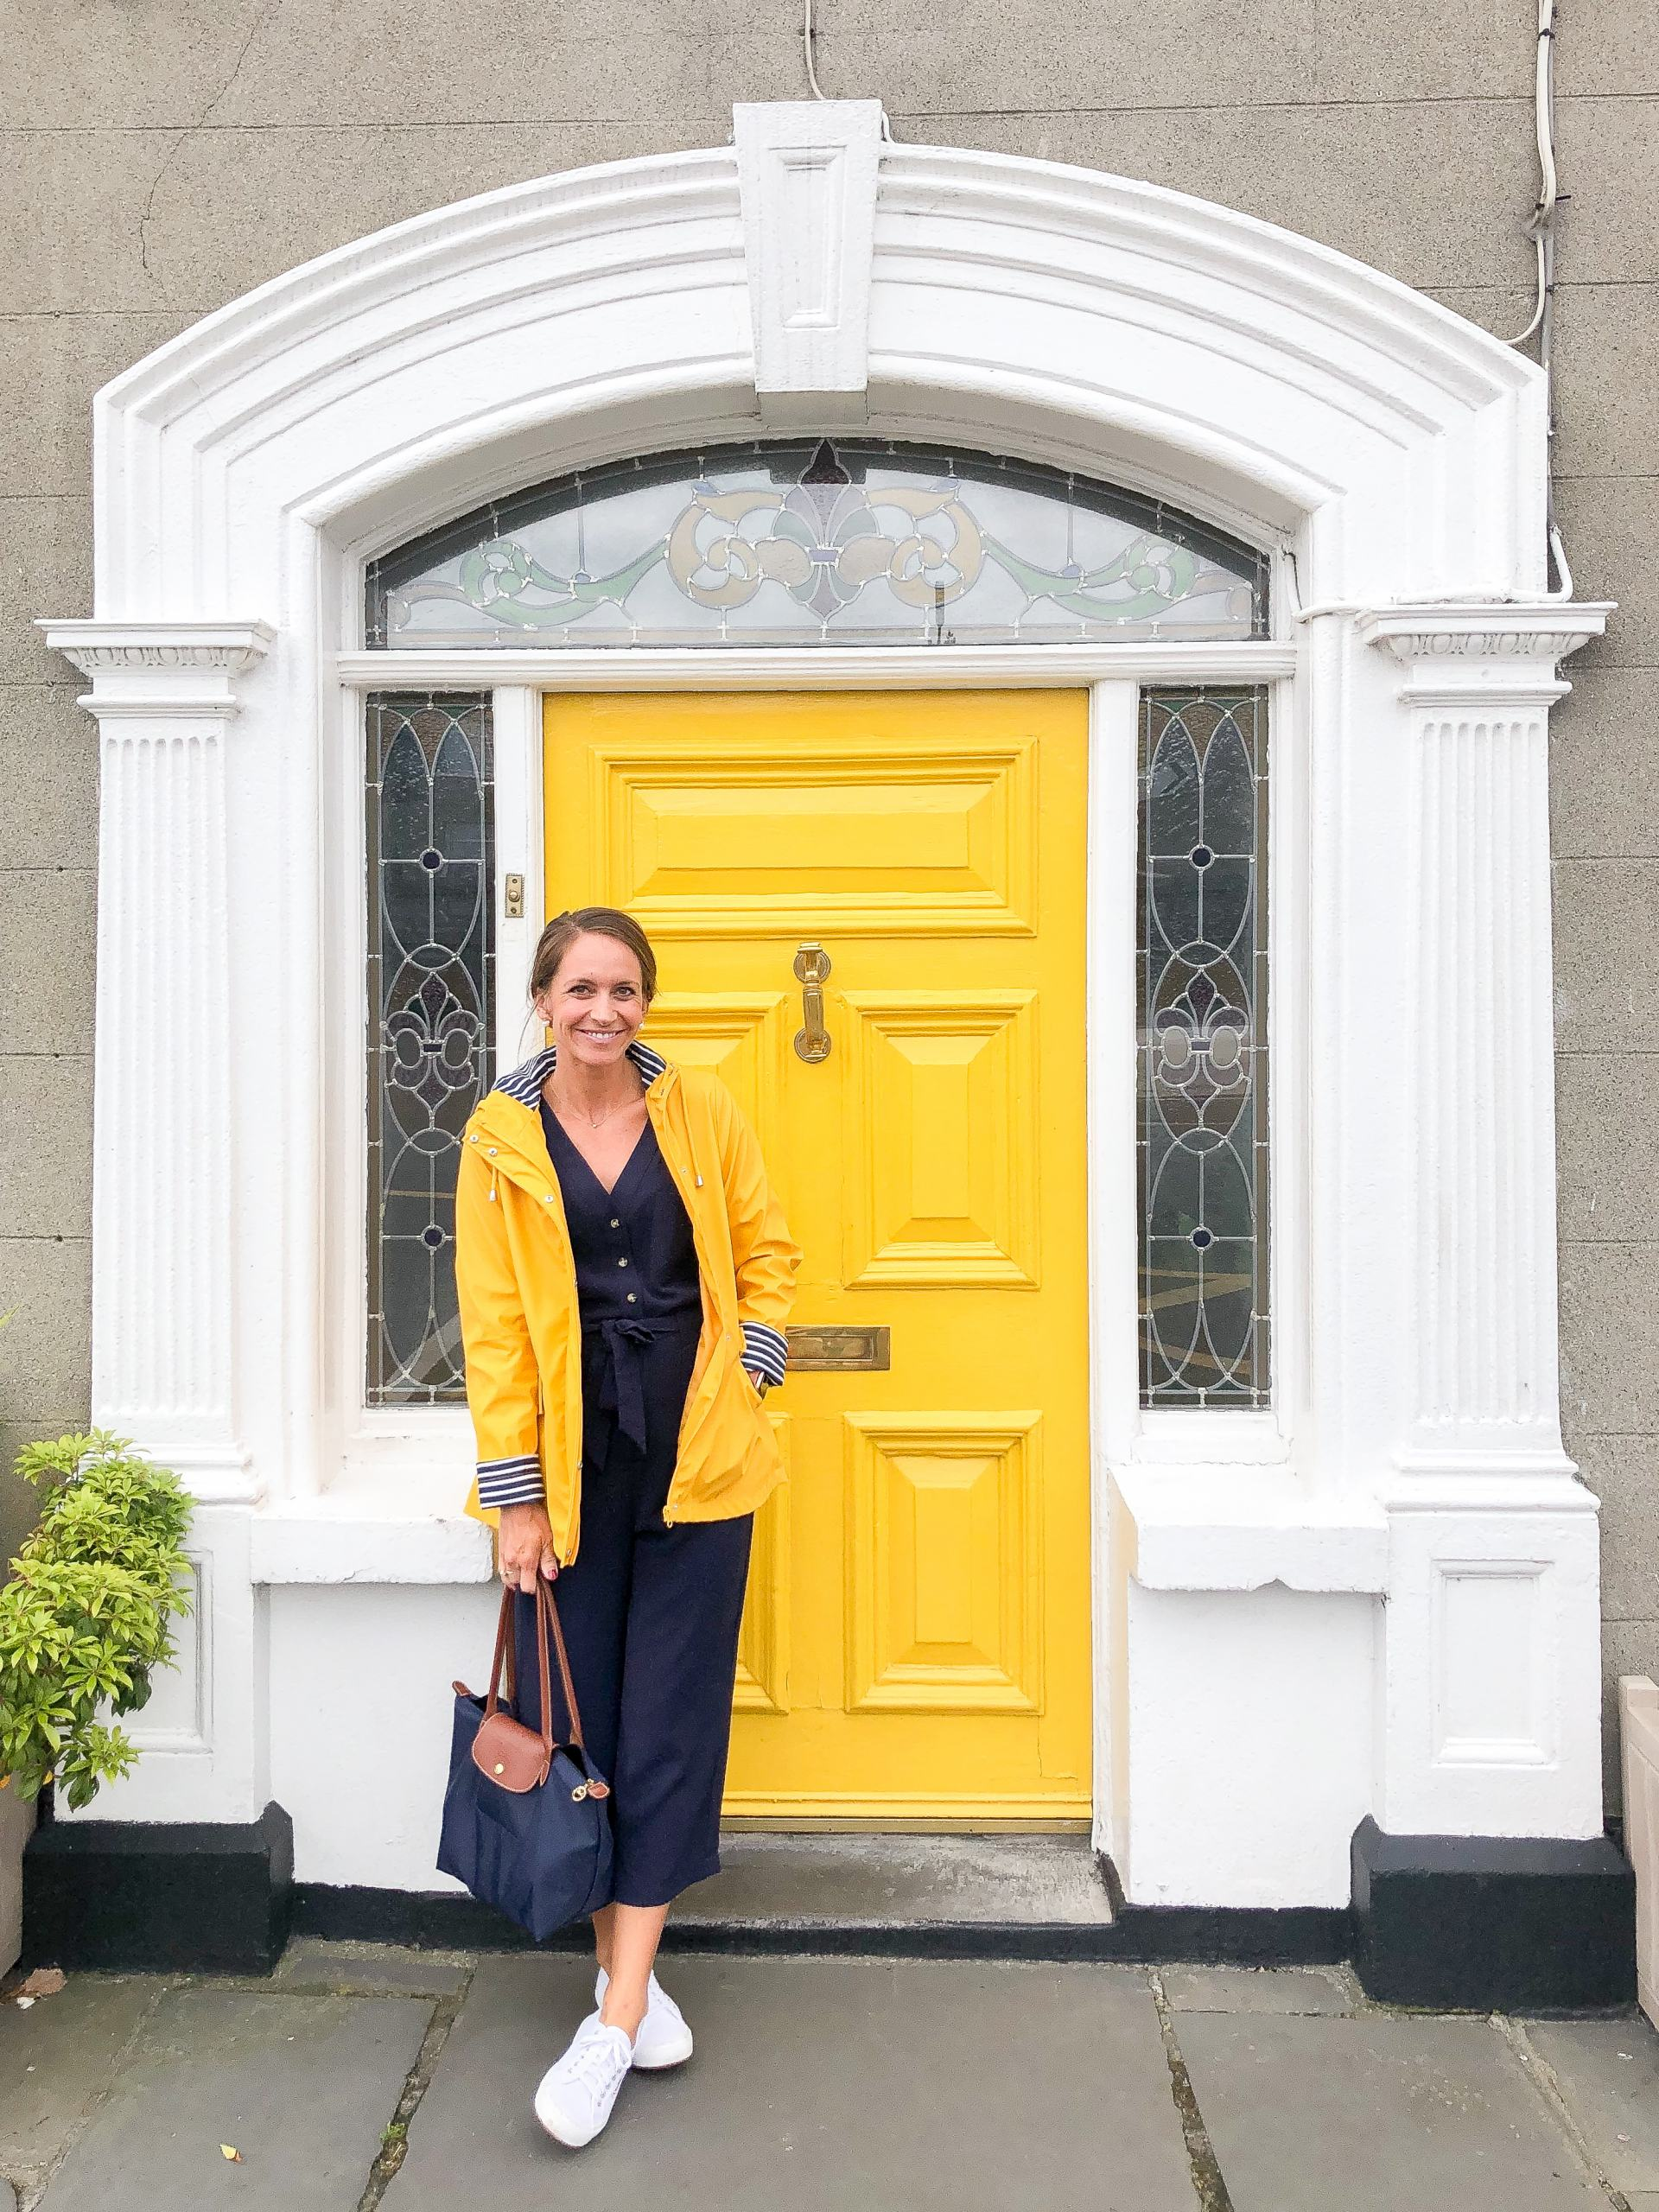 traveling in ireland -doors of ireland - travel style - travel outfit inspo - yellow rain jacket - rock of cashel